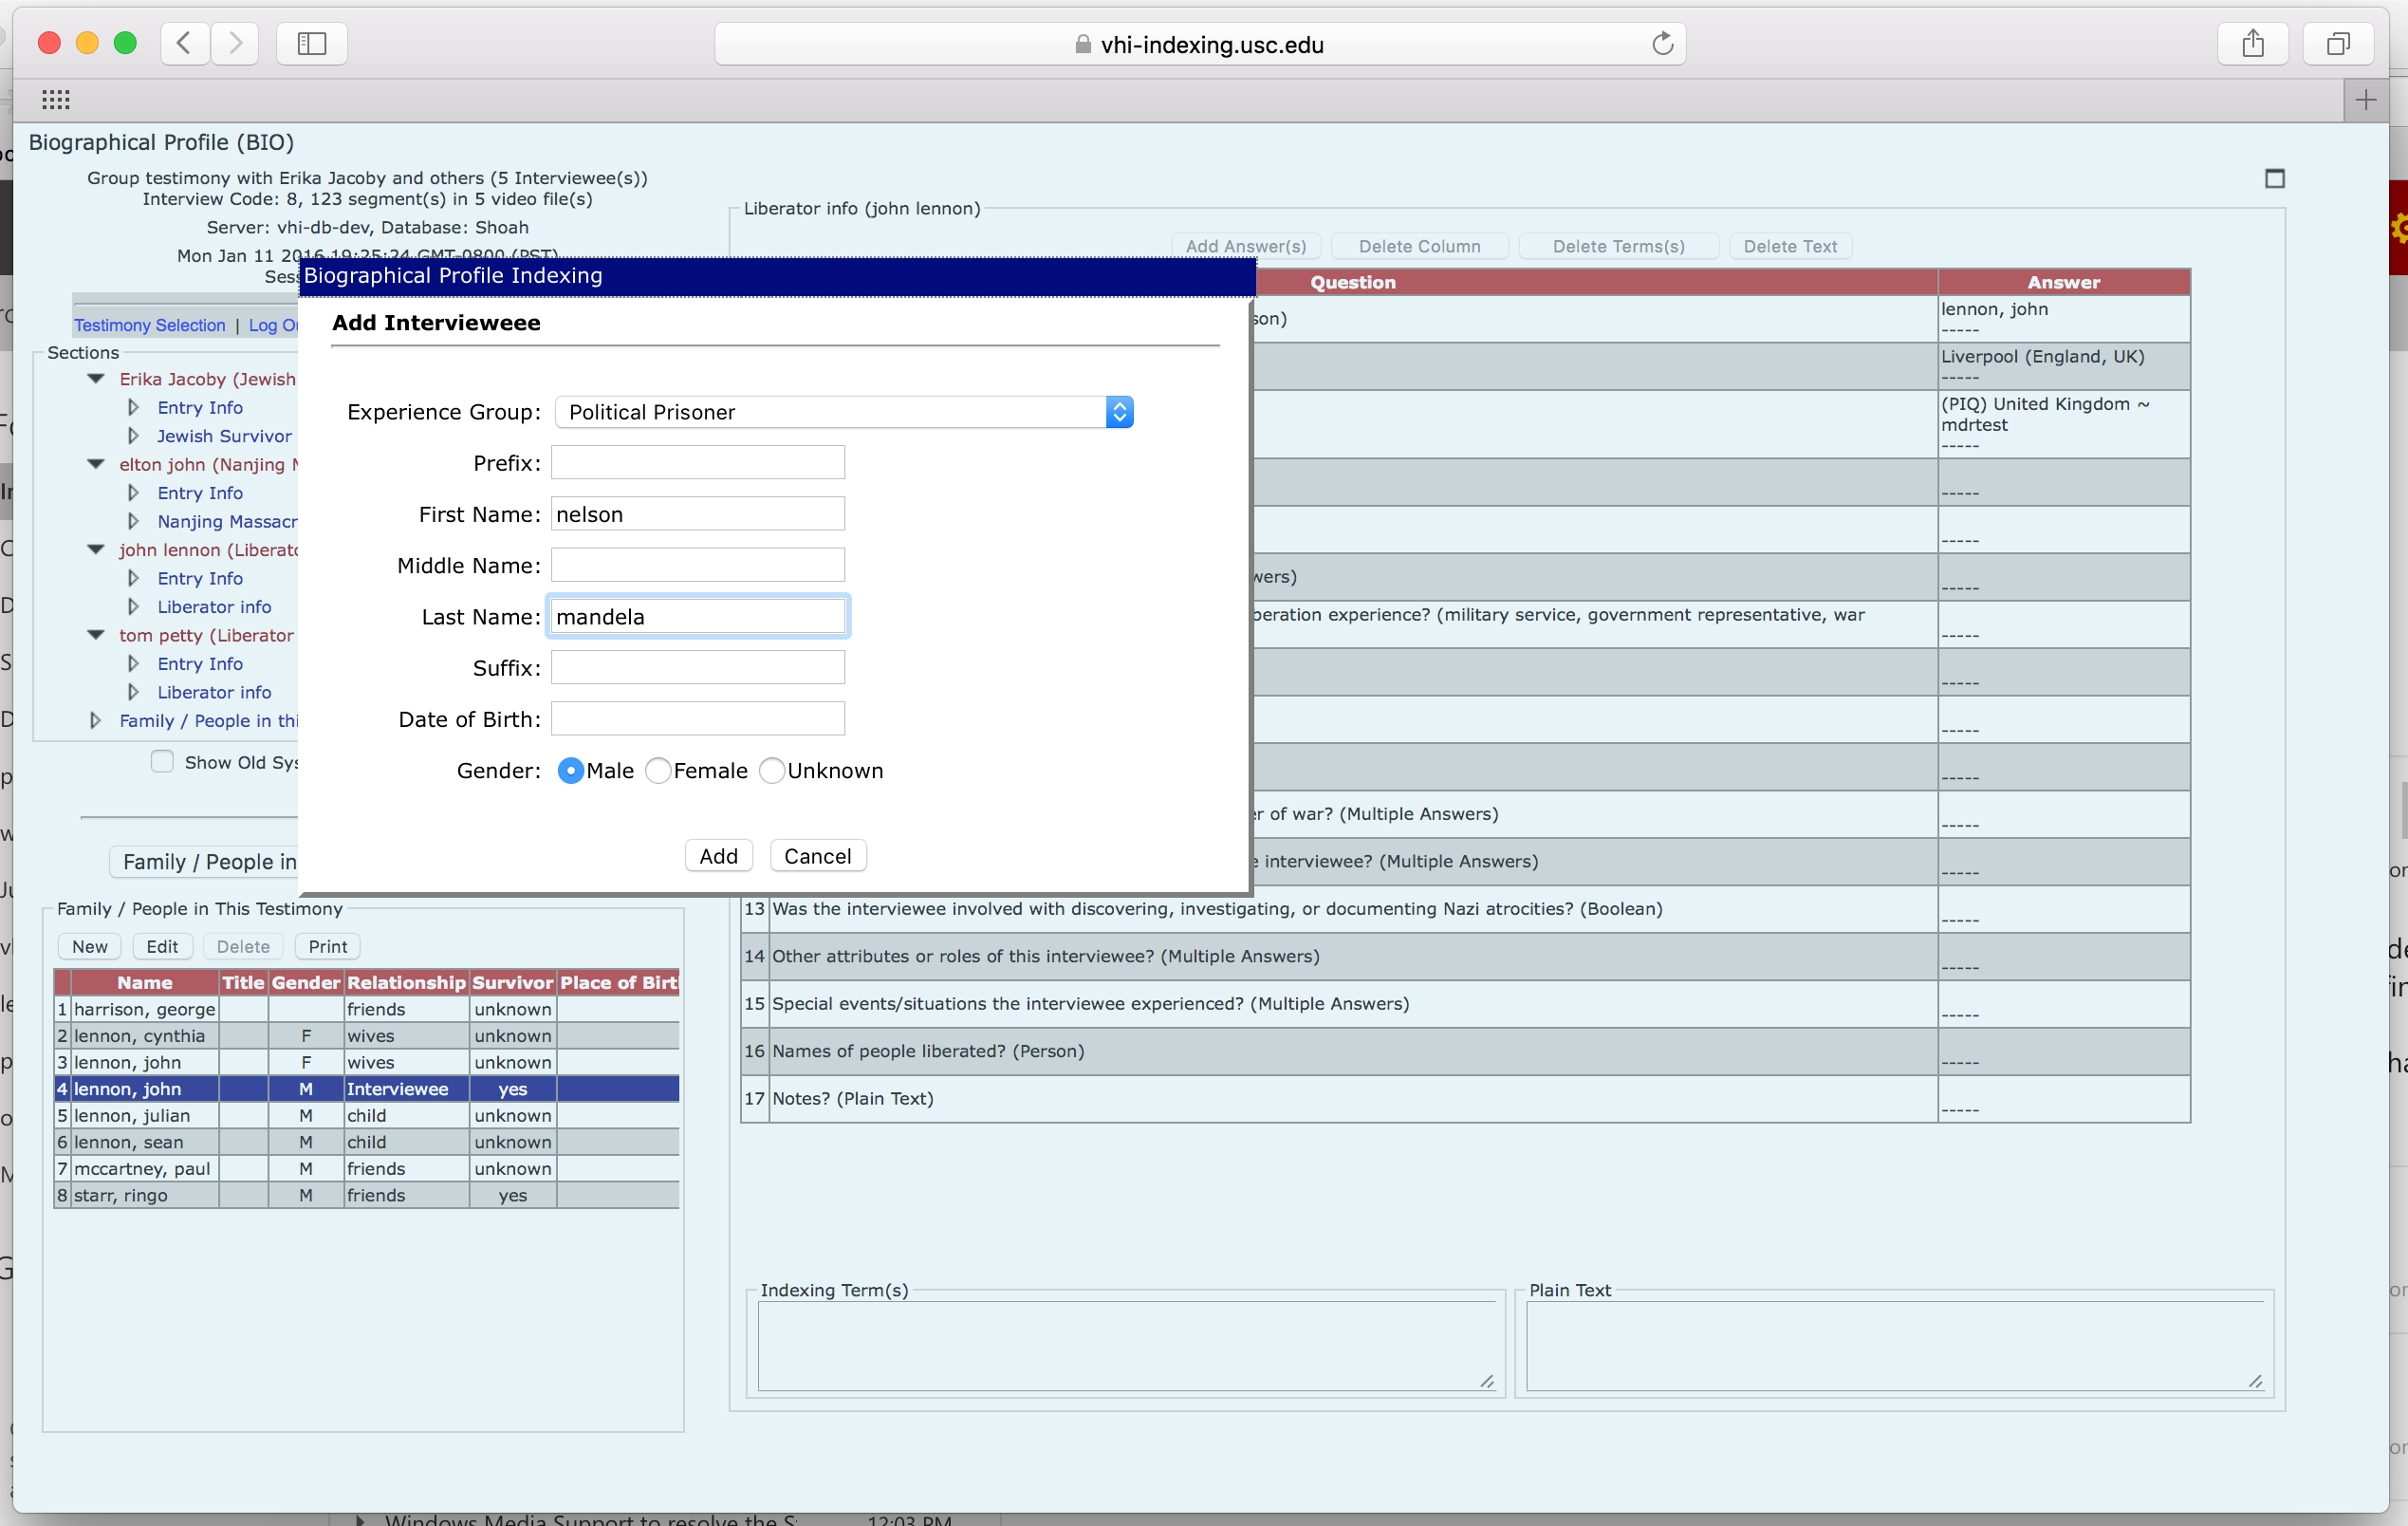 Screenshot of indexing interface shows how an indexer can add a second interviewee to a testimony